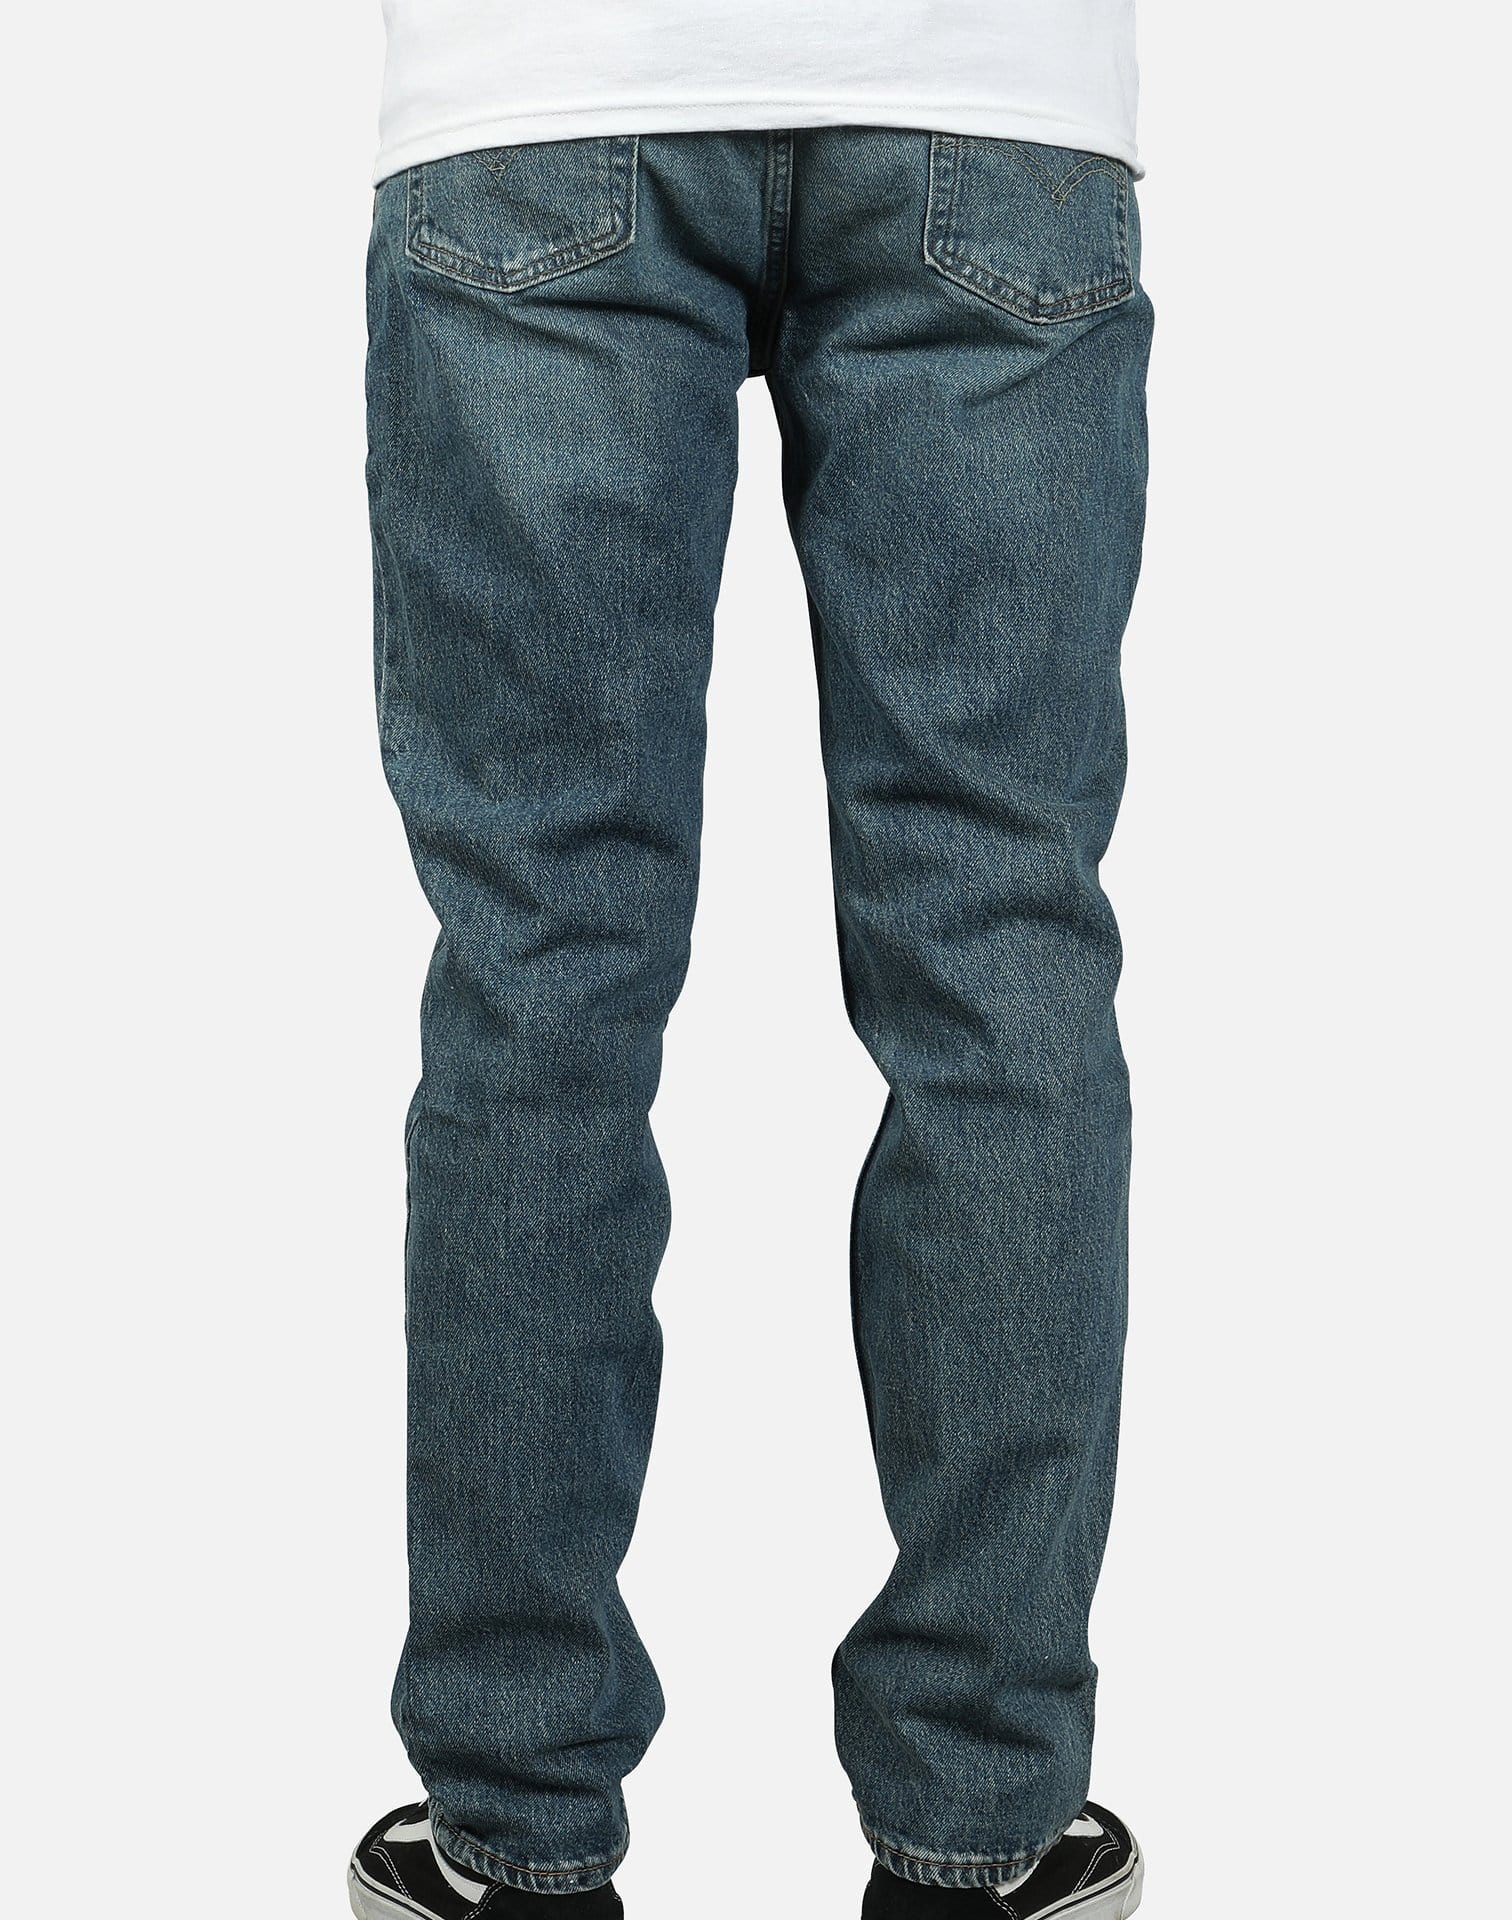 Levi's Men's 511 Slim Stretch Jeans